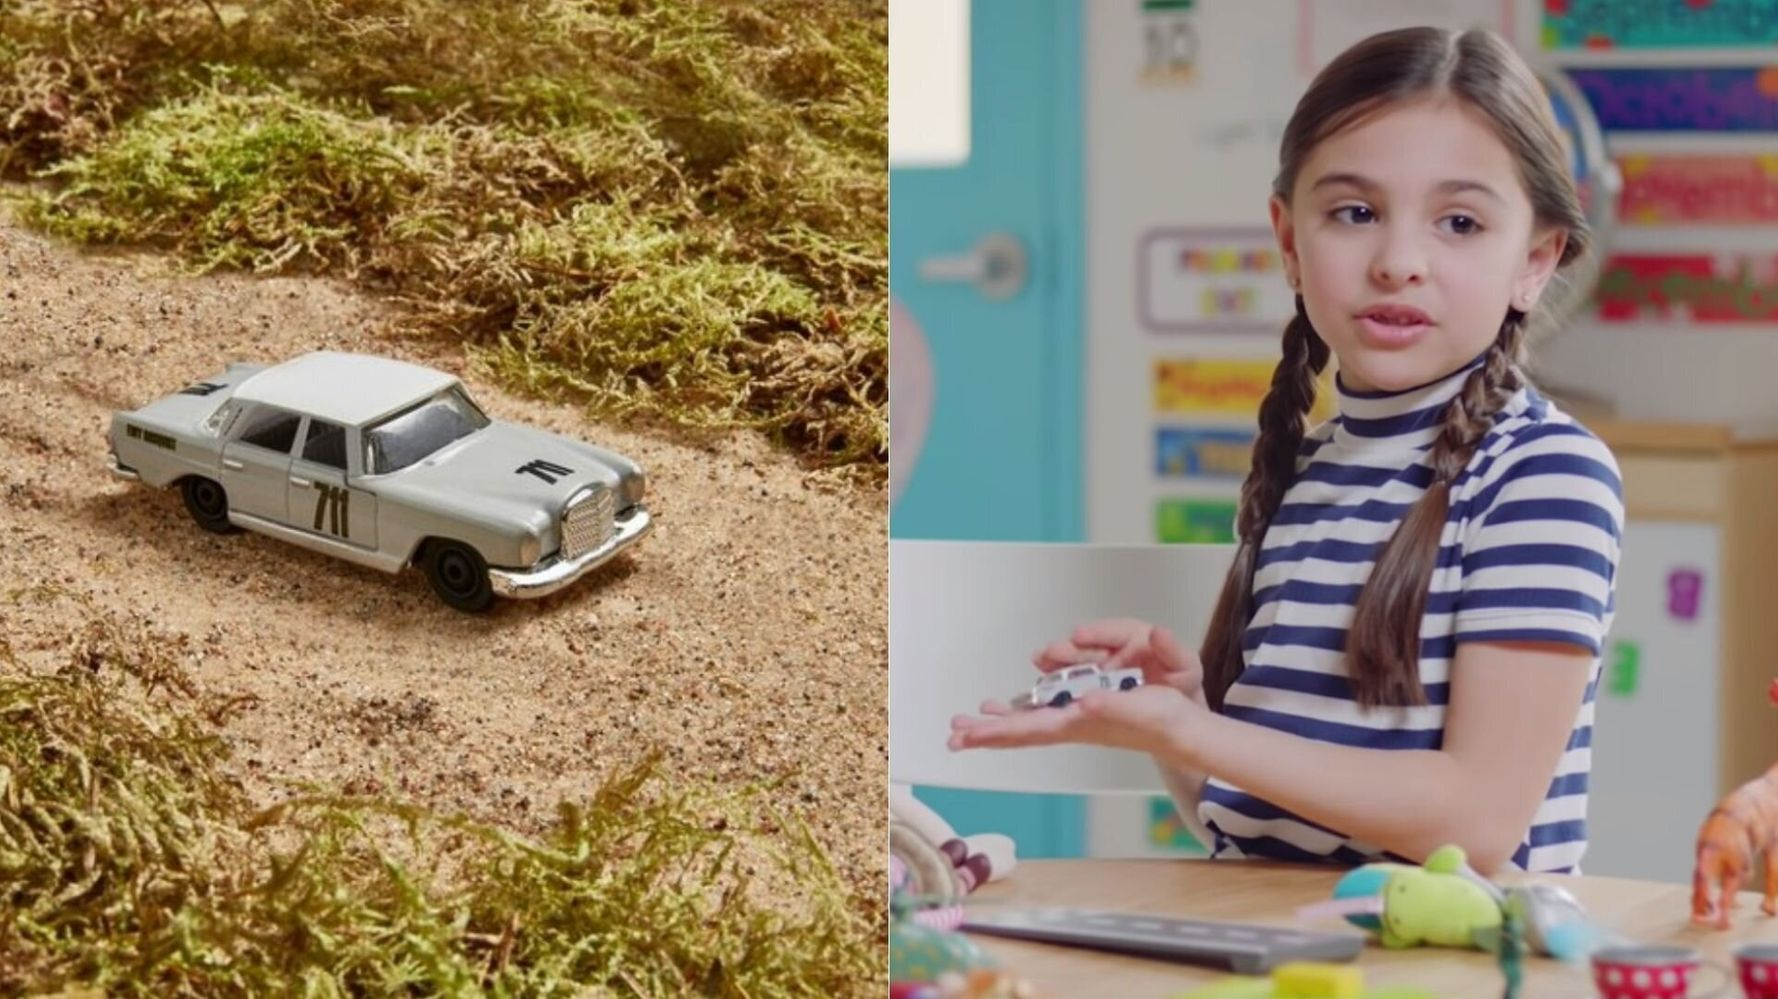 Mercedes-Benz And Mattel Aim To Smash Stereotypes With New Toy Car Ad